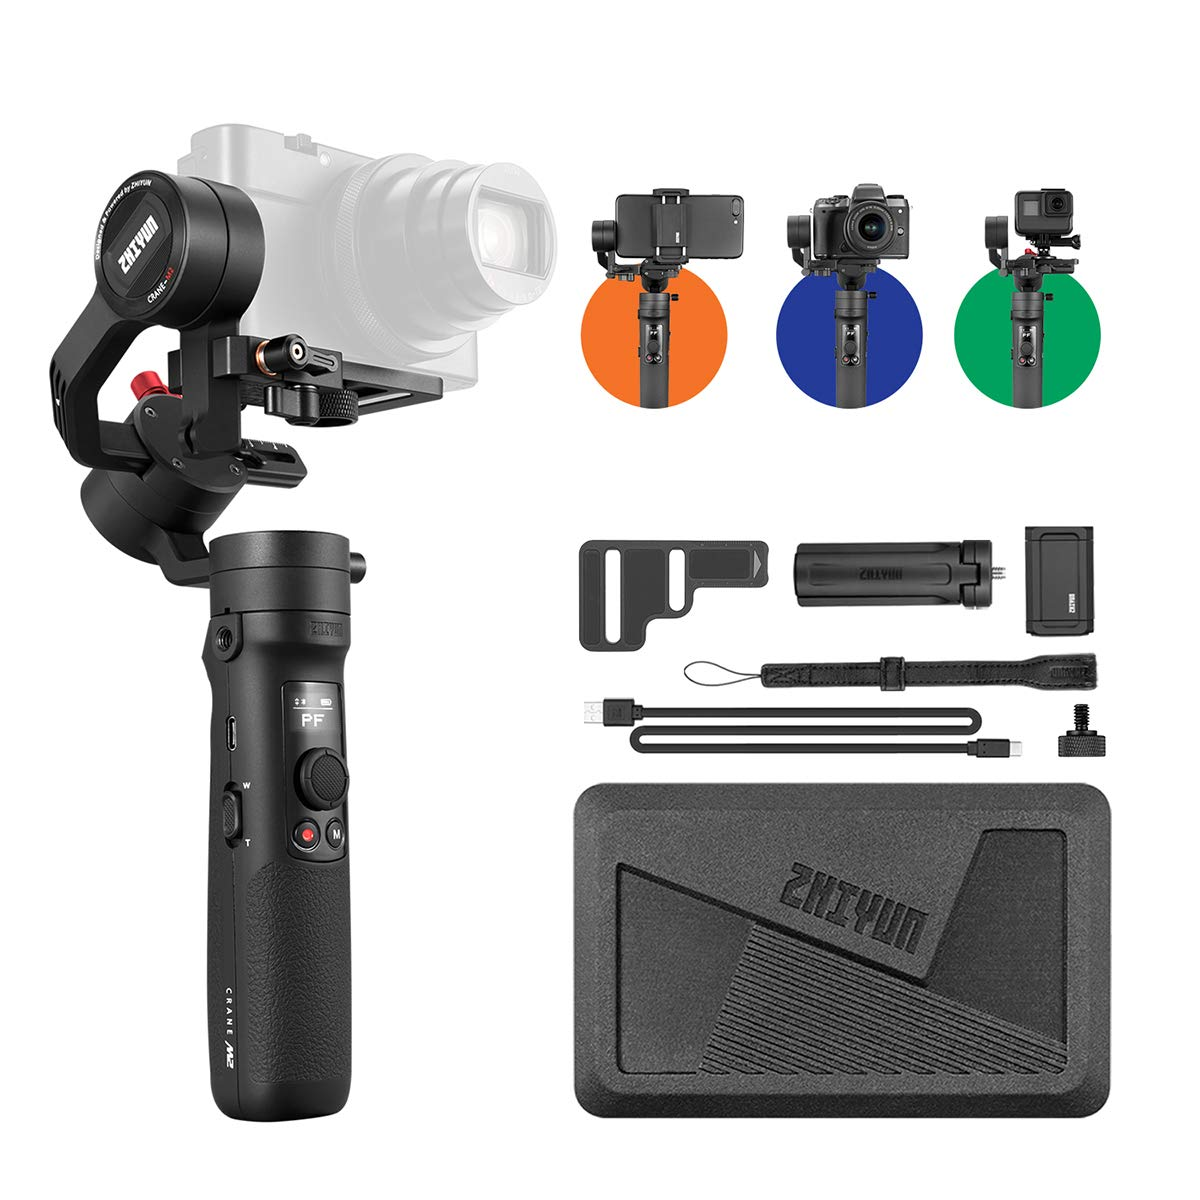 Zhiyun Crane-M2 [Official] Handheld 3-Axis Gimbal Stabilizer by zhi yun